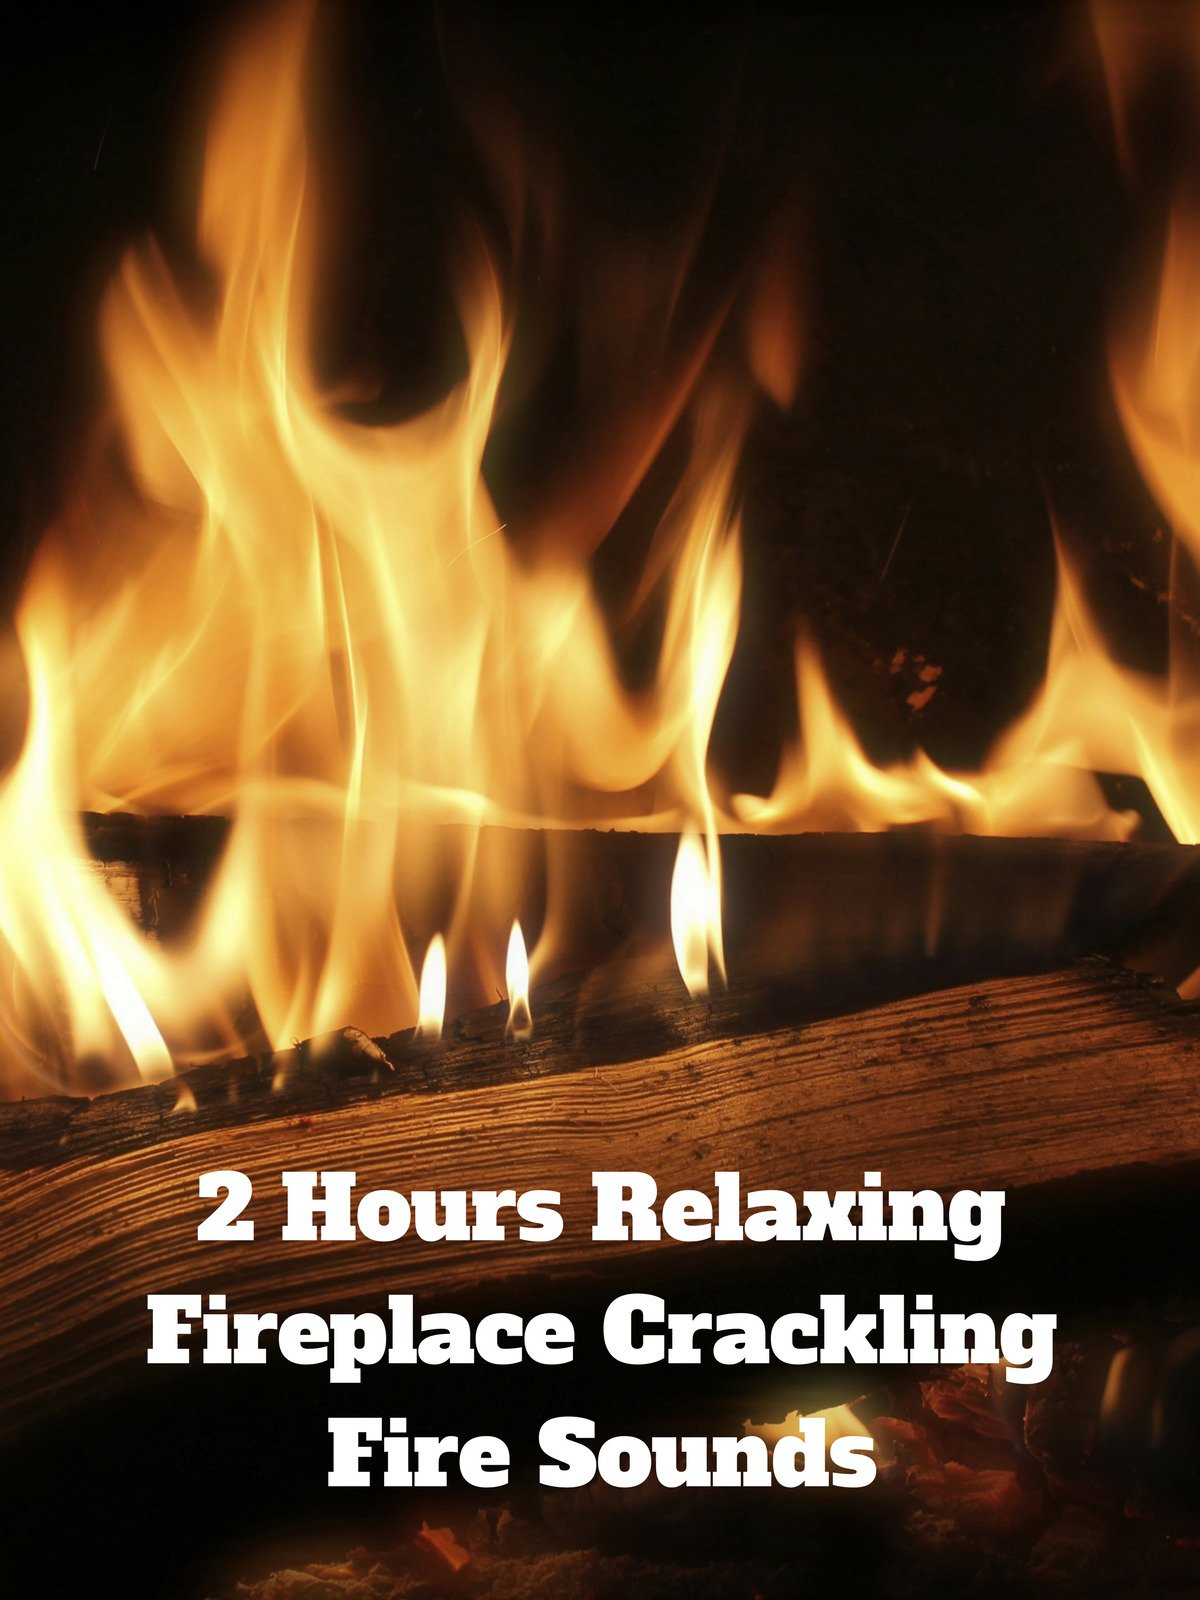 Fireplace Sounds Watch 2 Hours Relaxing Fireplace Crackling Fire Sounds On Amazon